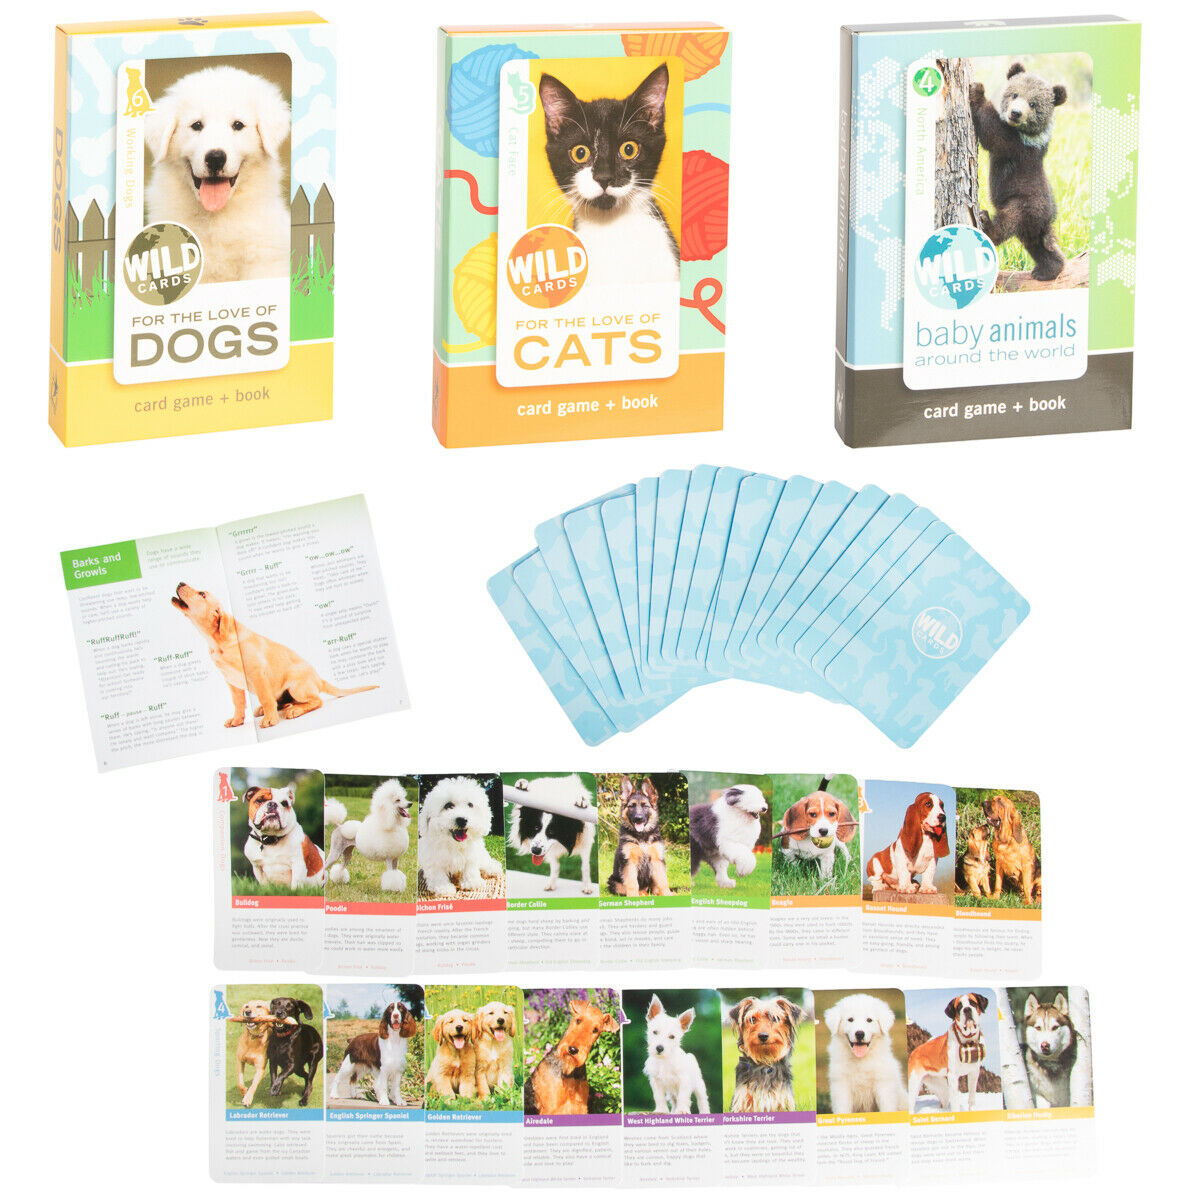 Wild Animal Flash Card Game Book For Kids Educational Learning Cats Dogs Babies 2